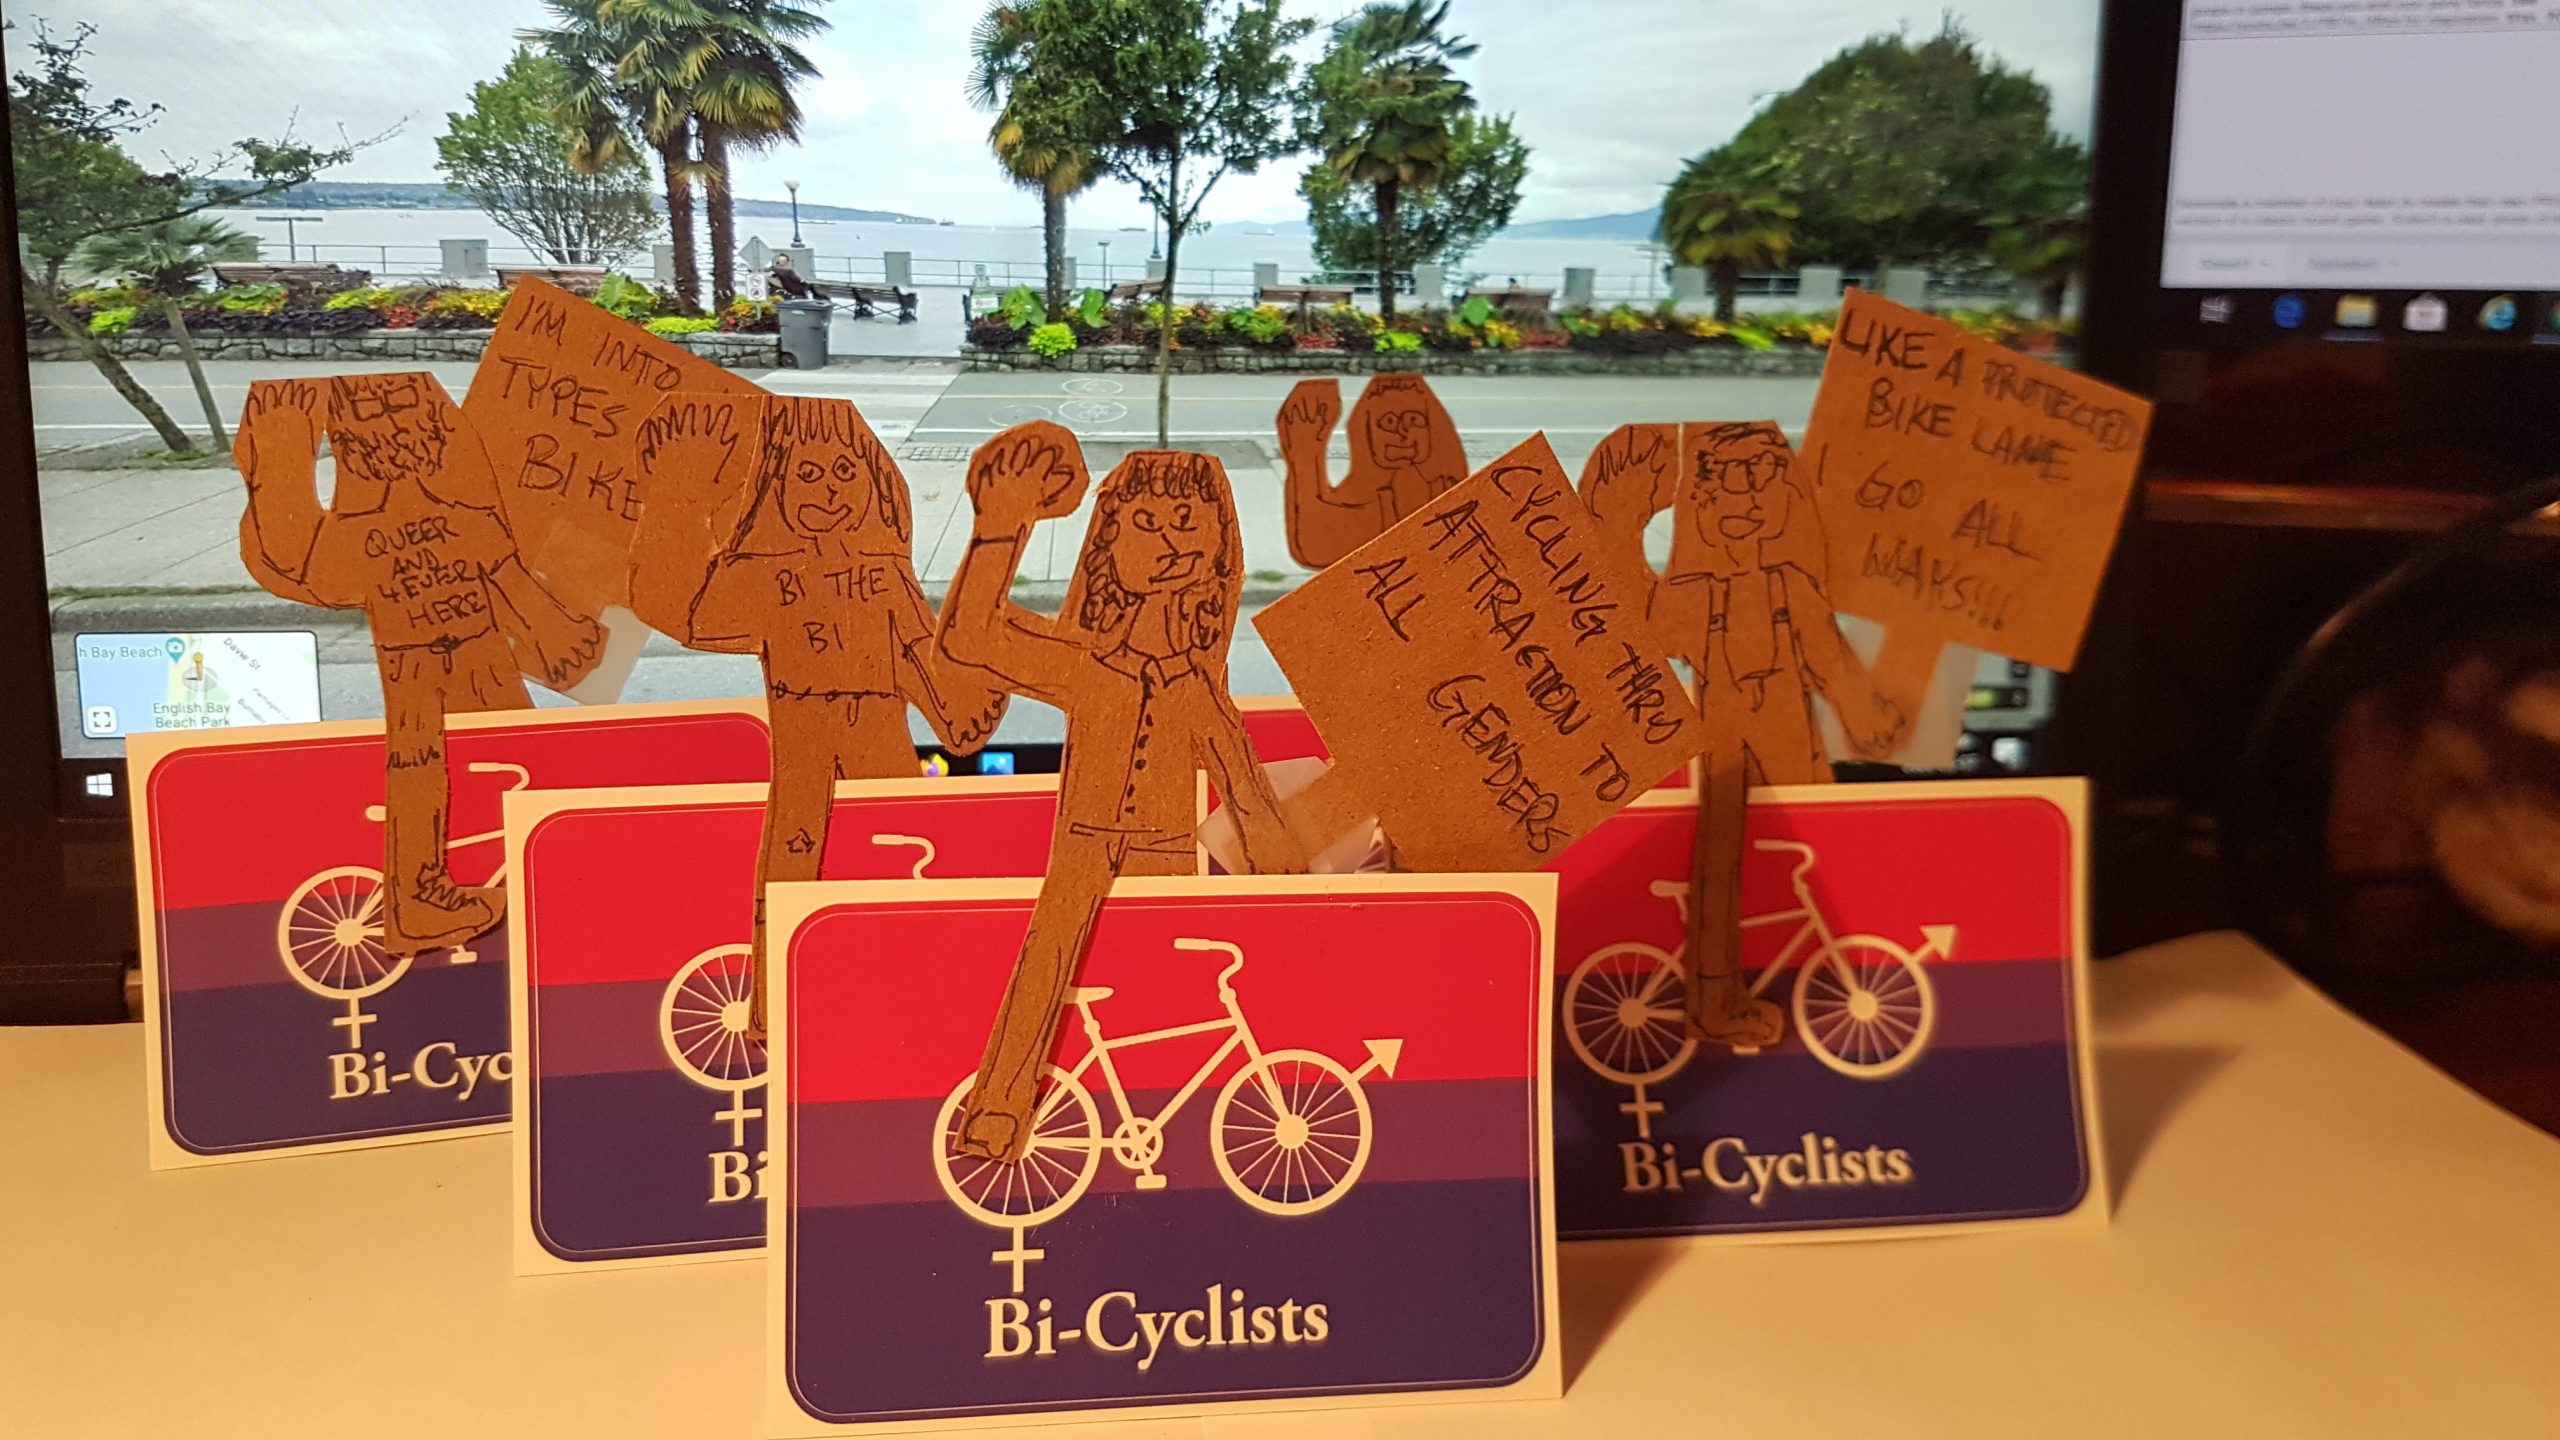 """A number of cardboard cutouts of people. The cutouts are placed on stickers that depict the bi flag and bicycles and the word """"Bi-Cyclists."""" The people are holding signs with slogans like """"Cycling through attraction to all genders"""""""